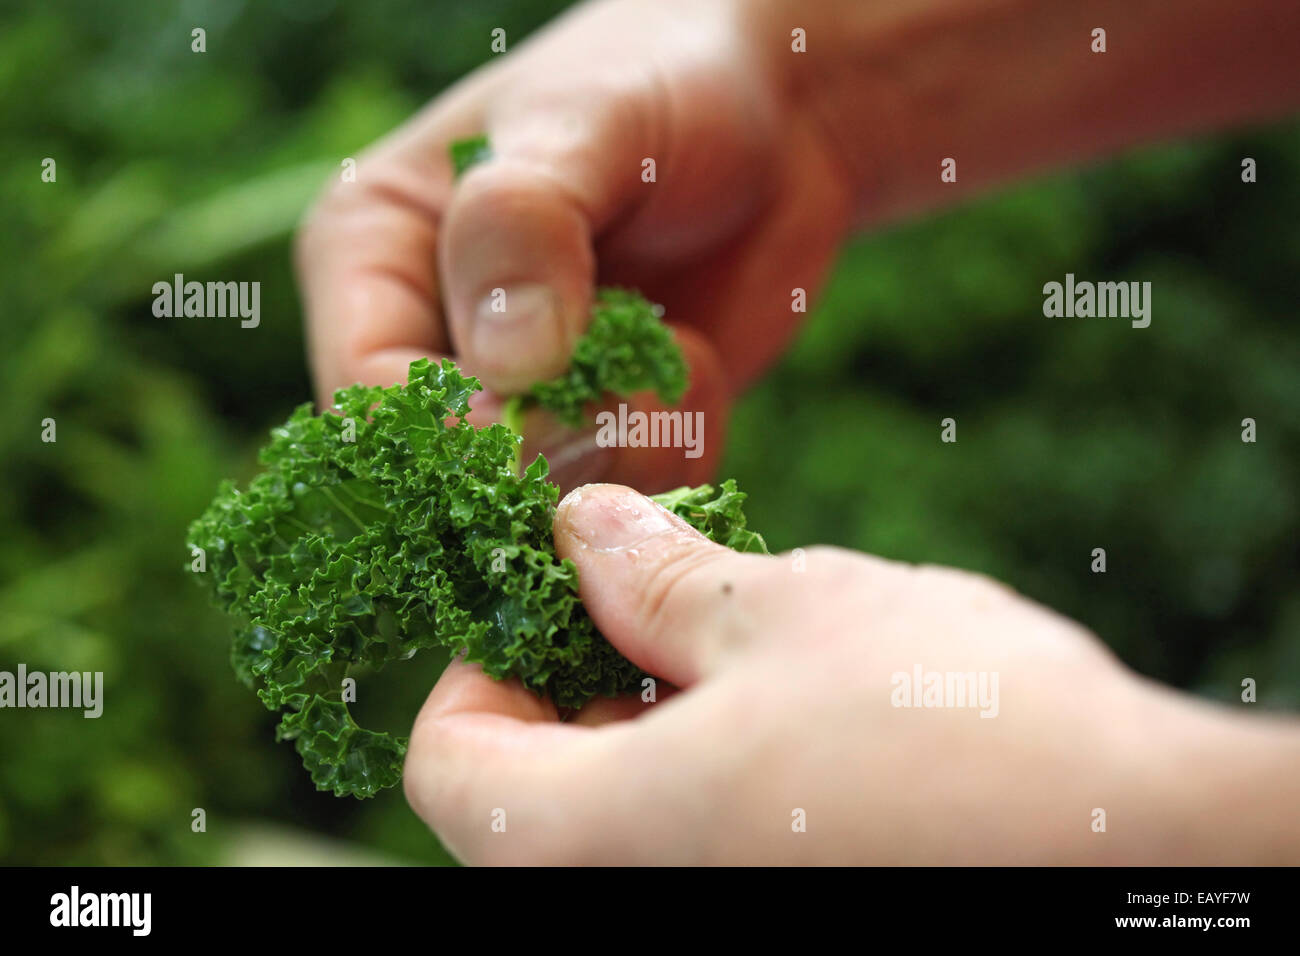 Close-up of hands preparing curly kale for a meal. - Stock Image